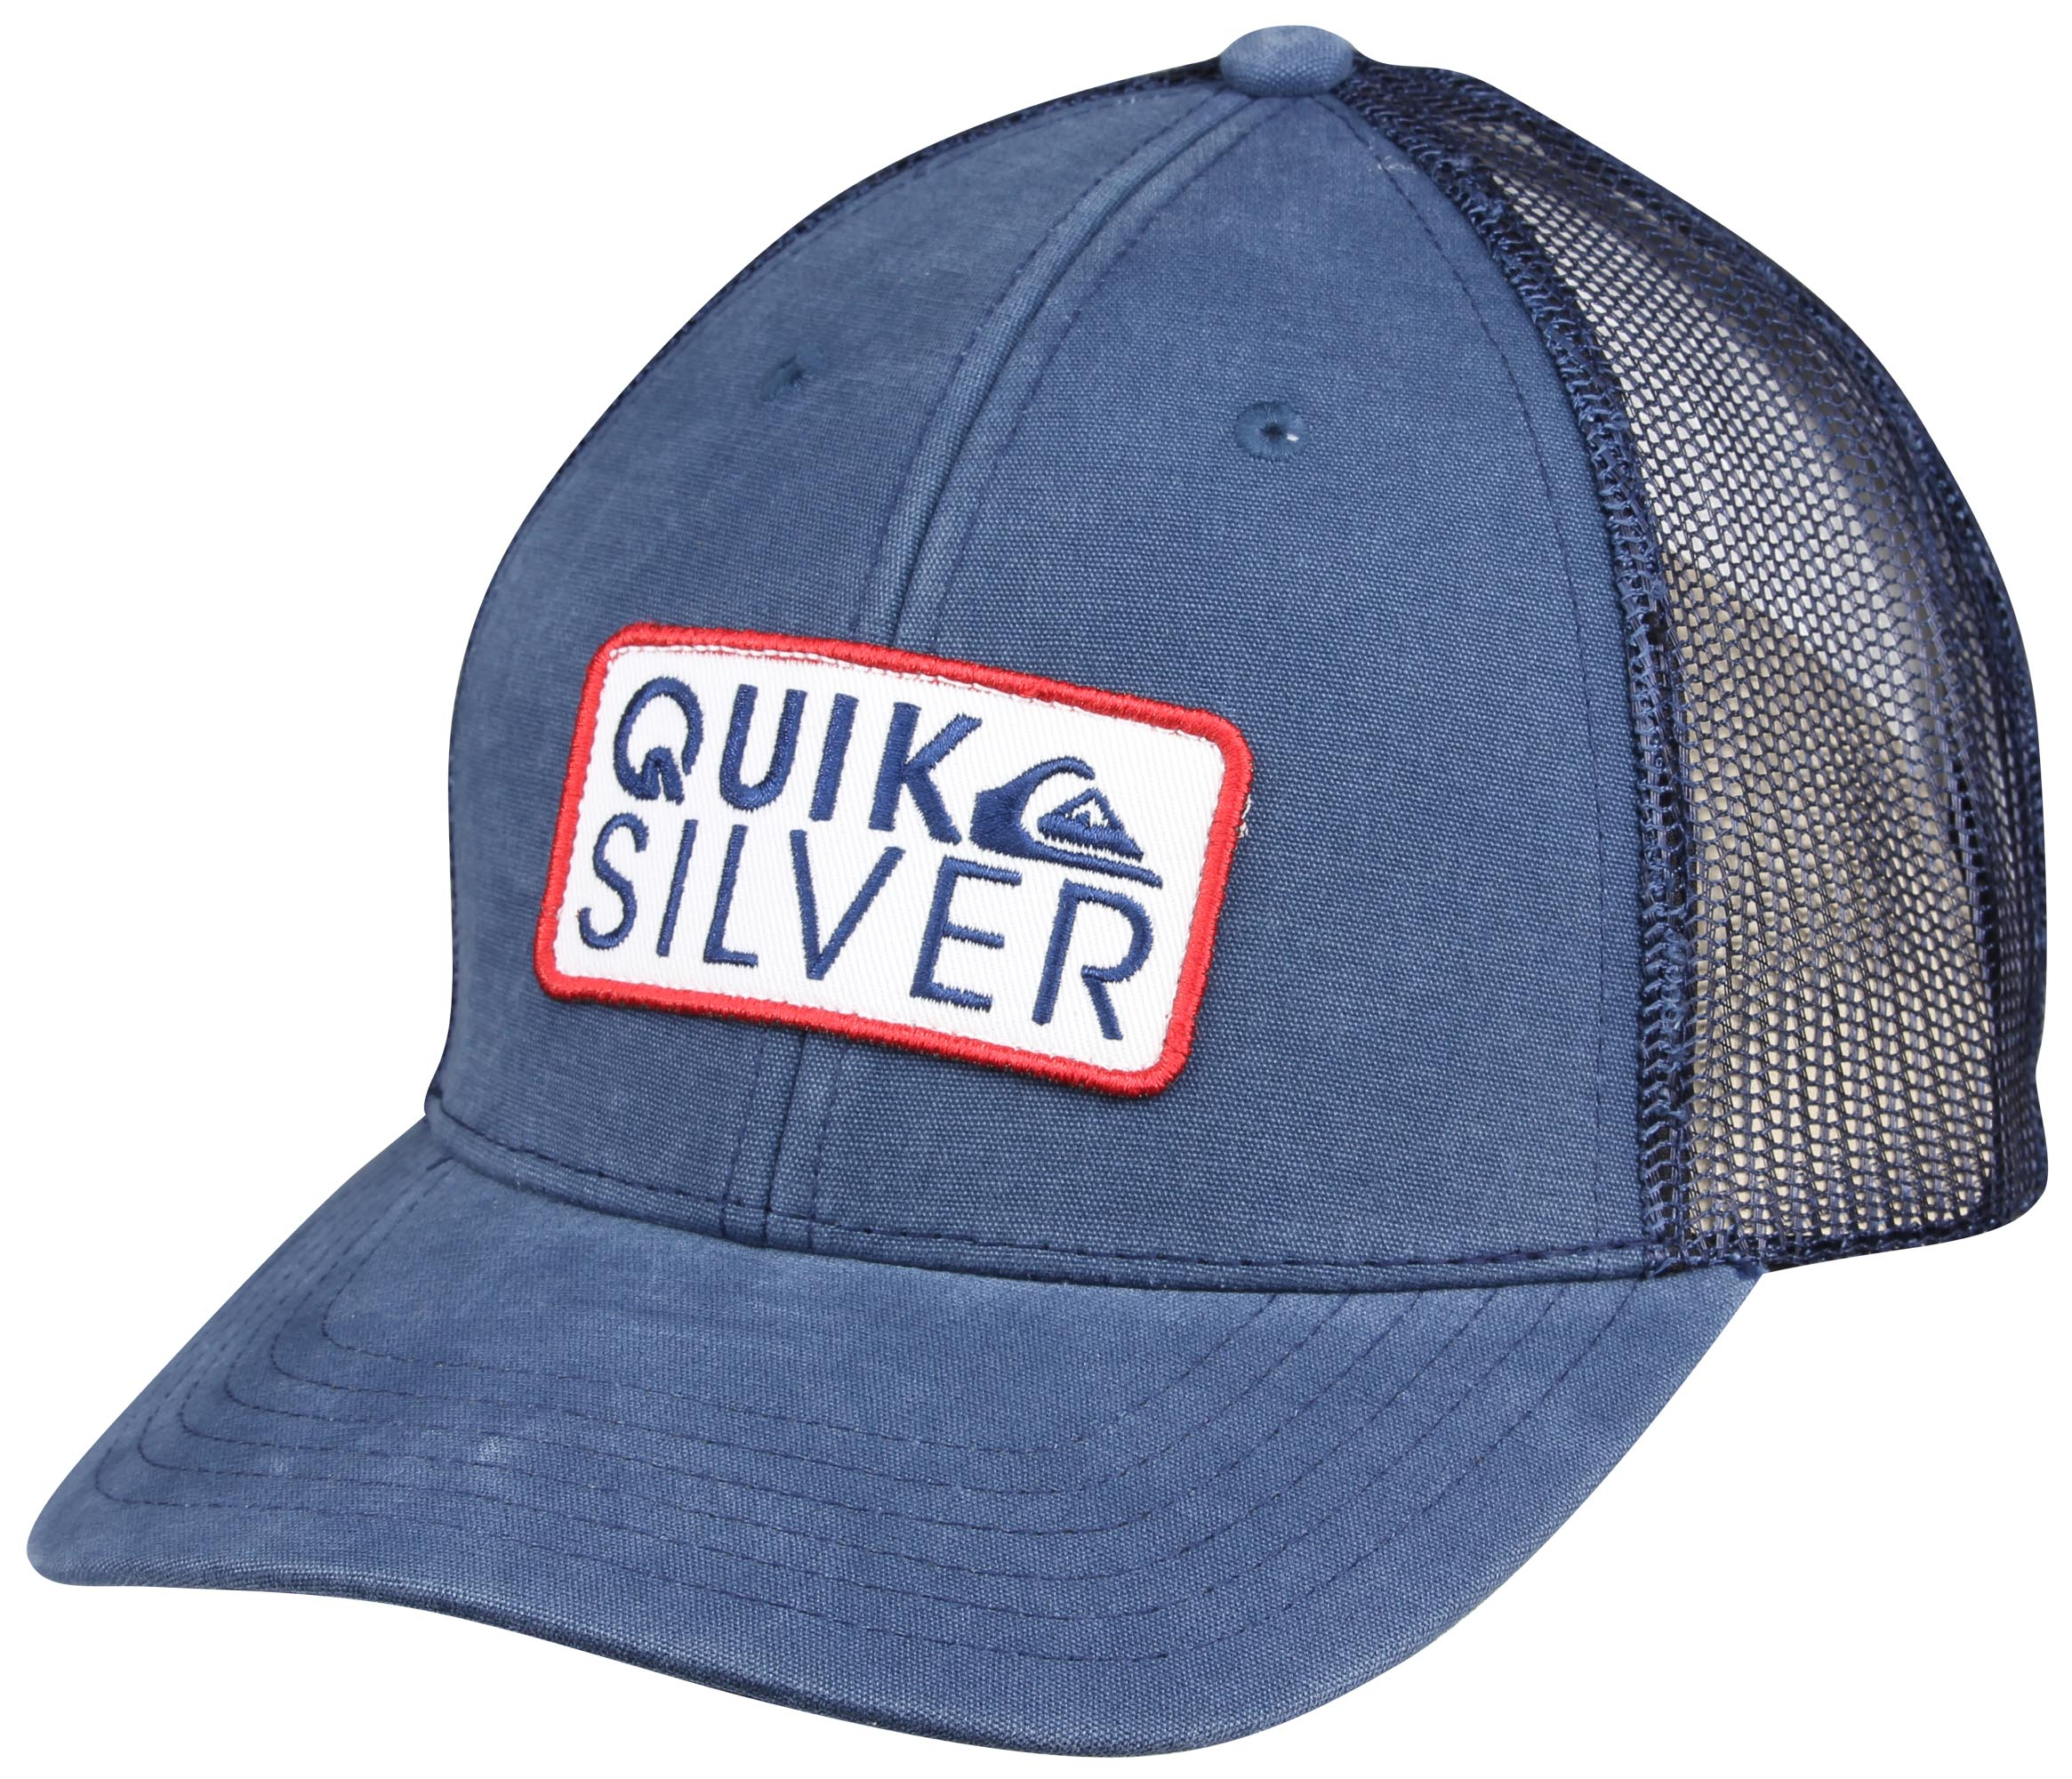 da3a95adef757c Image is loading Quiksilver-Mens-Shade-Ride-Snapback-Hat-Navy-Blazer-